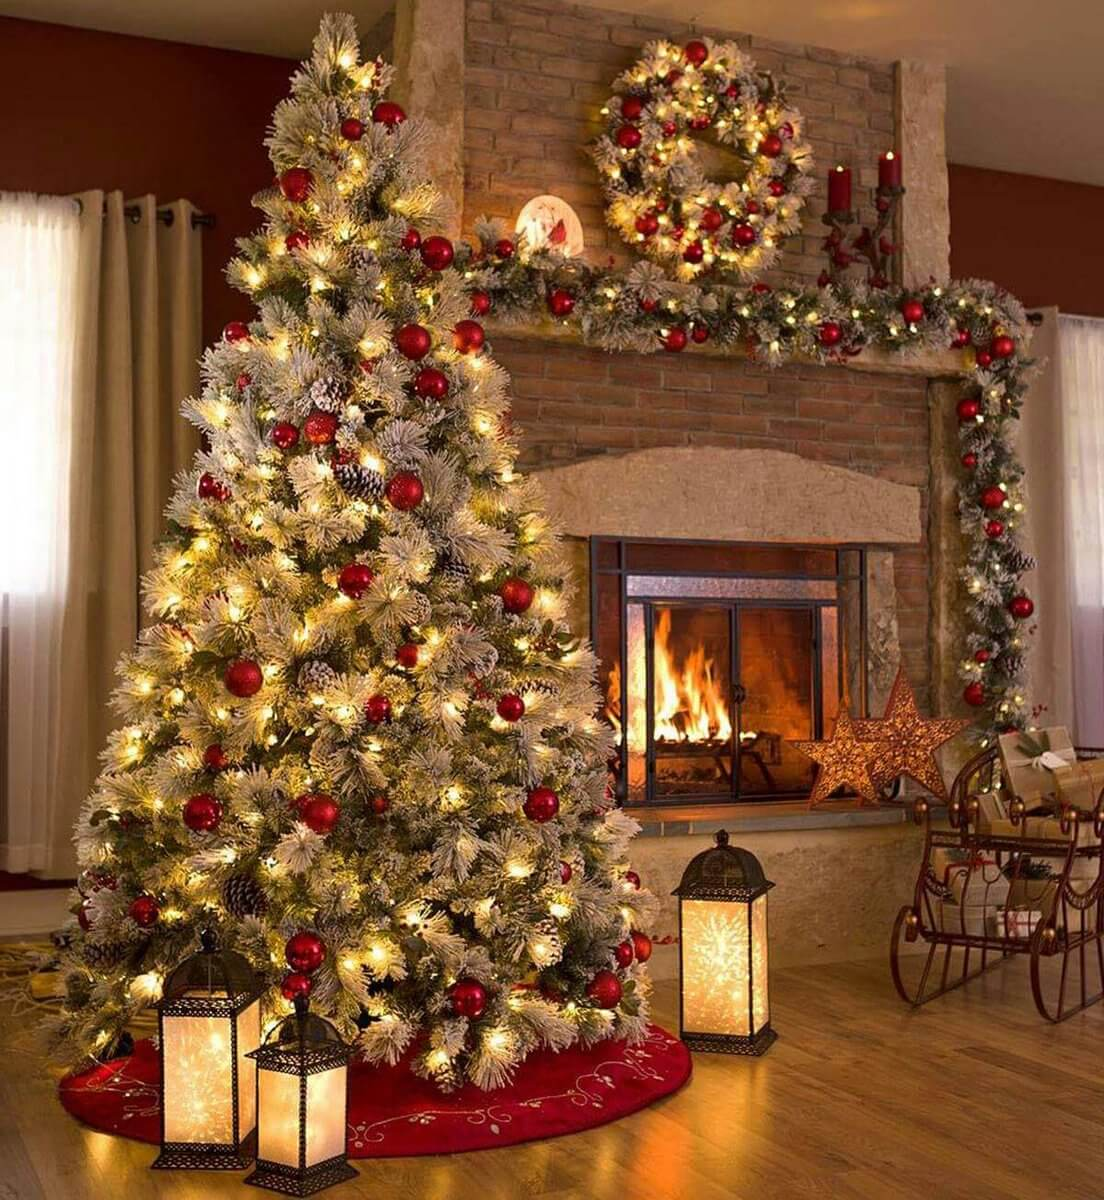 How To Decorate Your House For Christmas Without A Tree